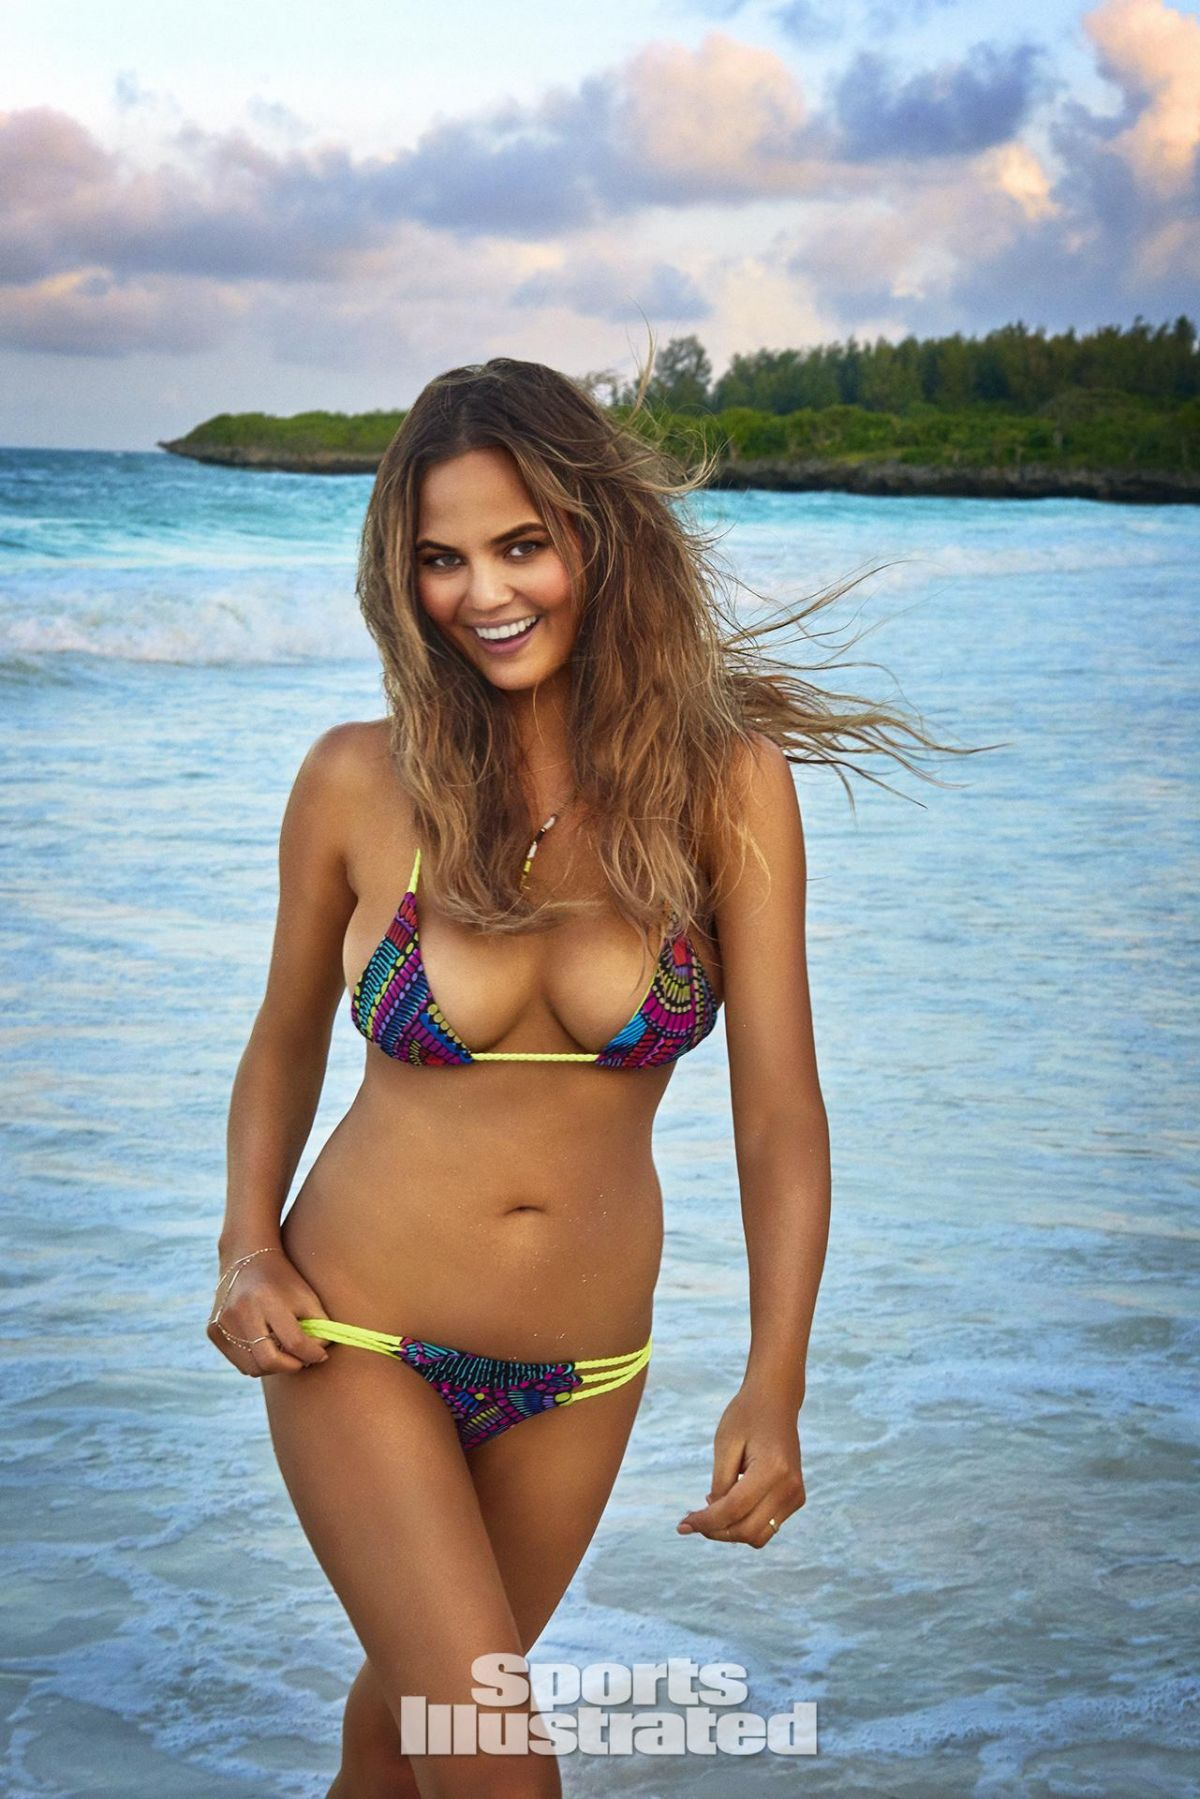 CHRISSY TEIGEN in Sports Illustrated Swimsuit Issue 2016